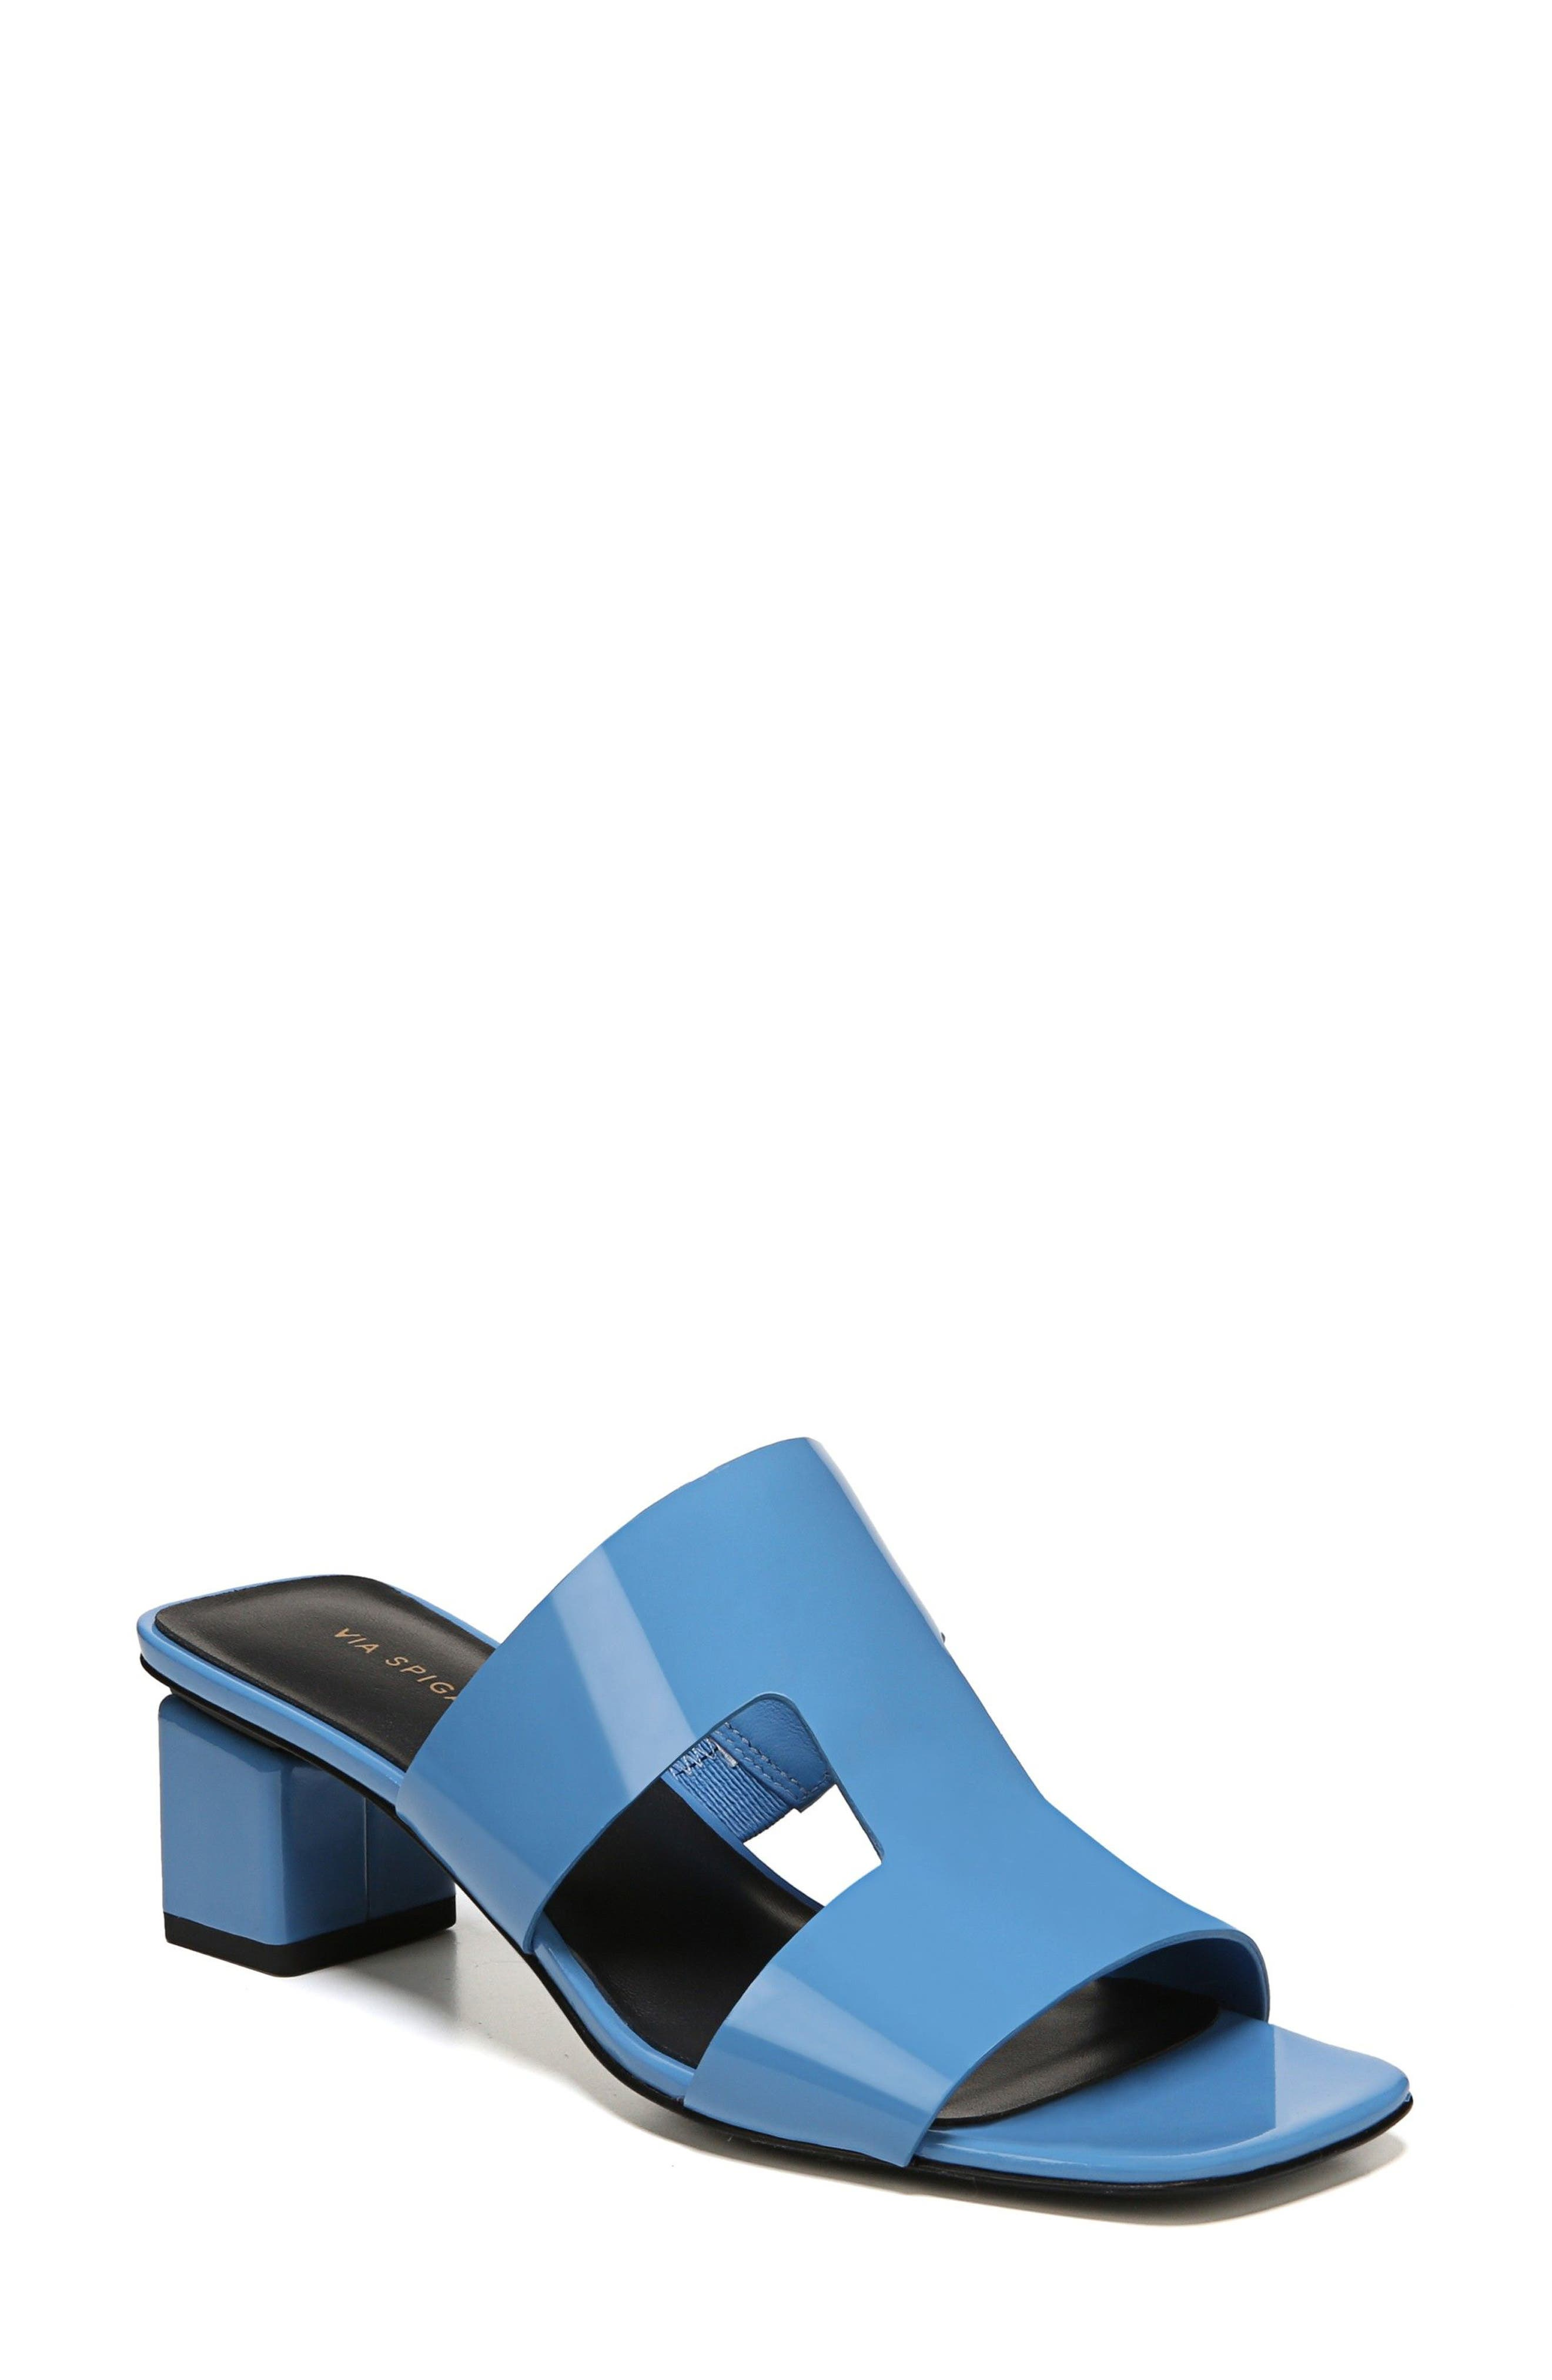 Florence Sandal,                         Main,                         color, Sky Patent Leather